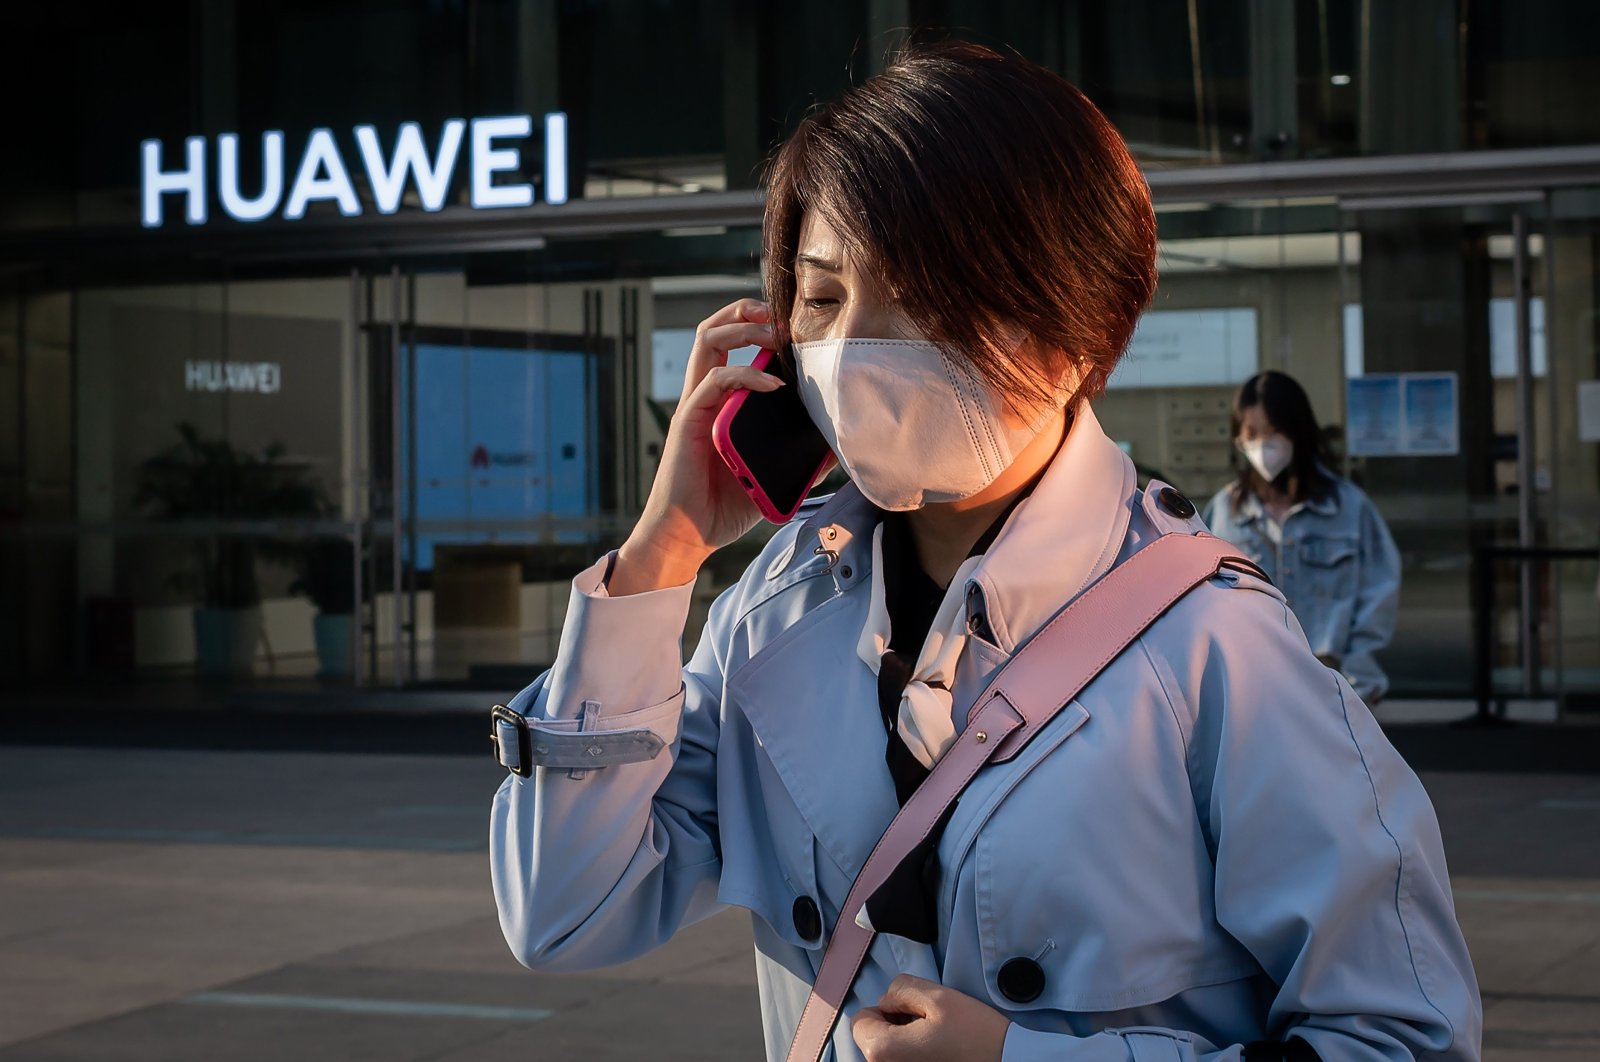 A woman wearing a mask speaks on her phone outside a Huawei shop in Beijing, China, April 1, 2020. (AFP Photo)